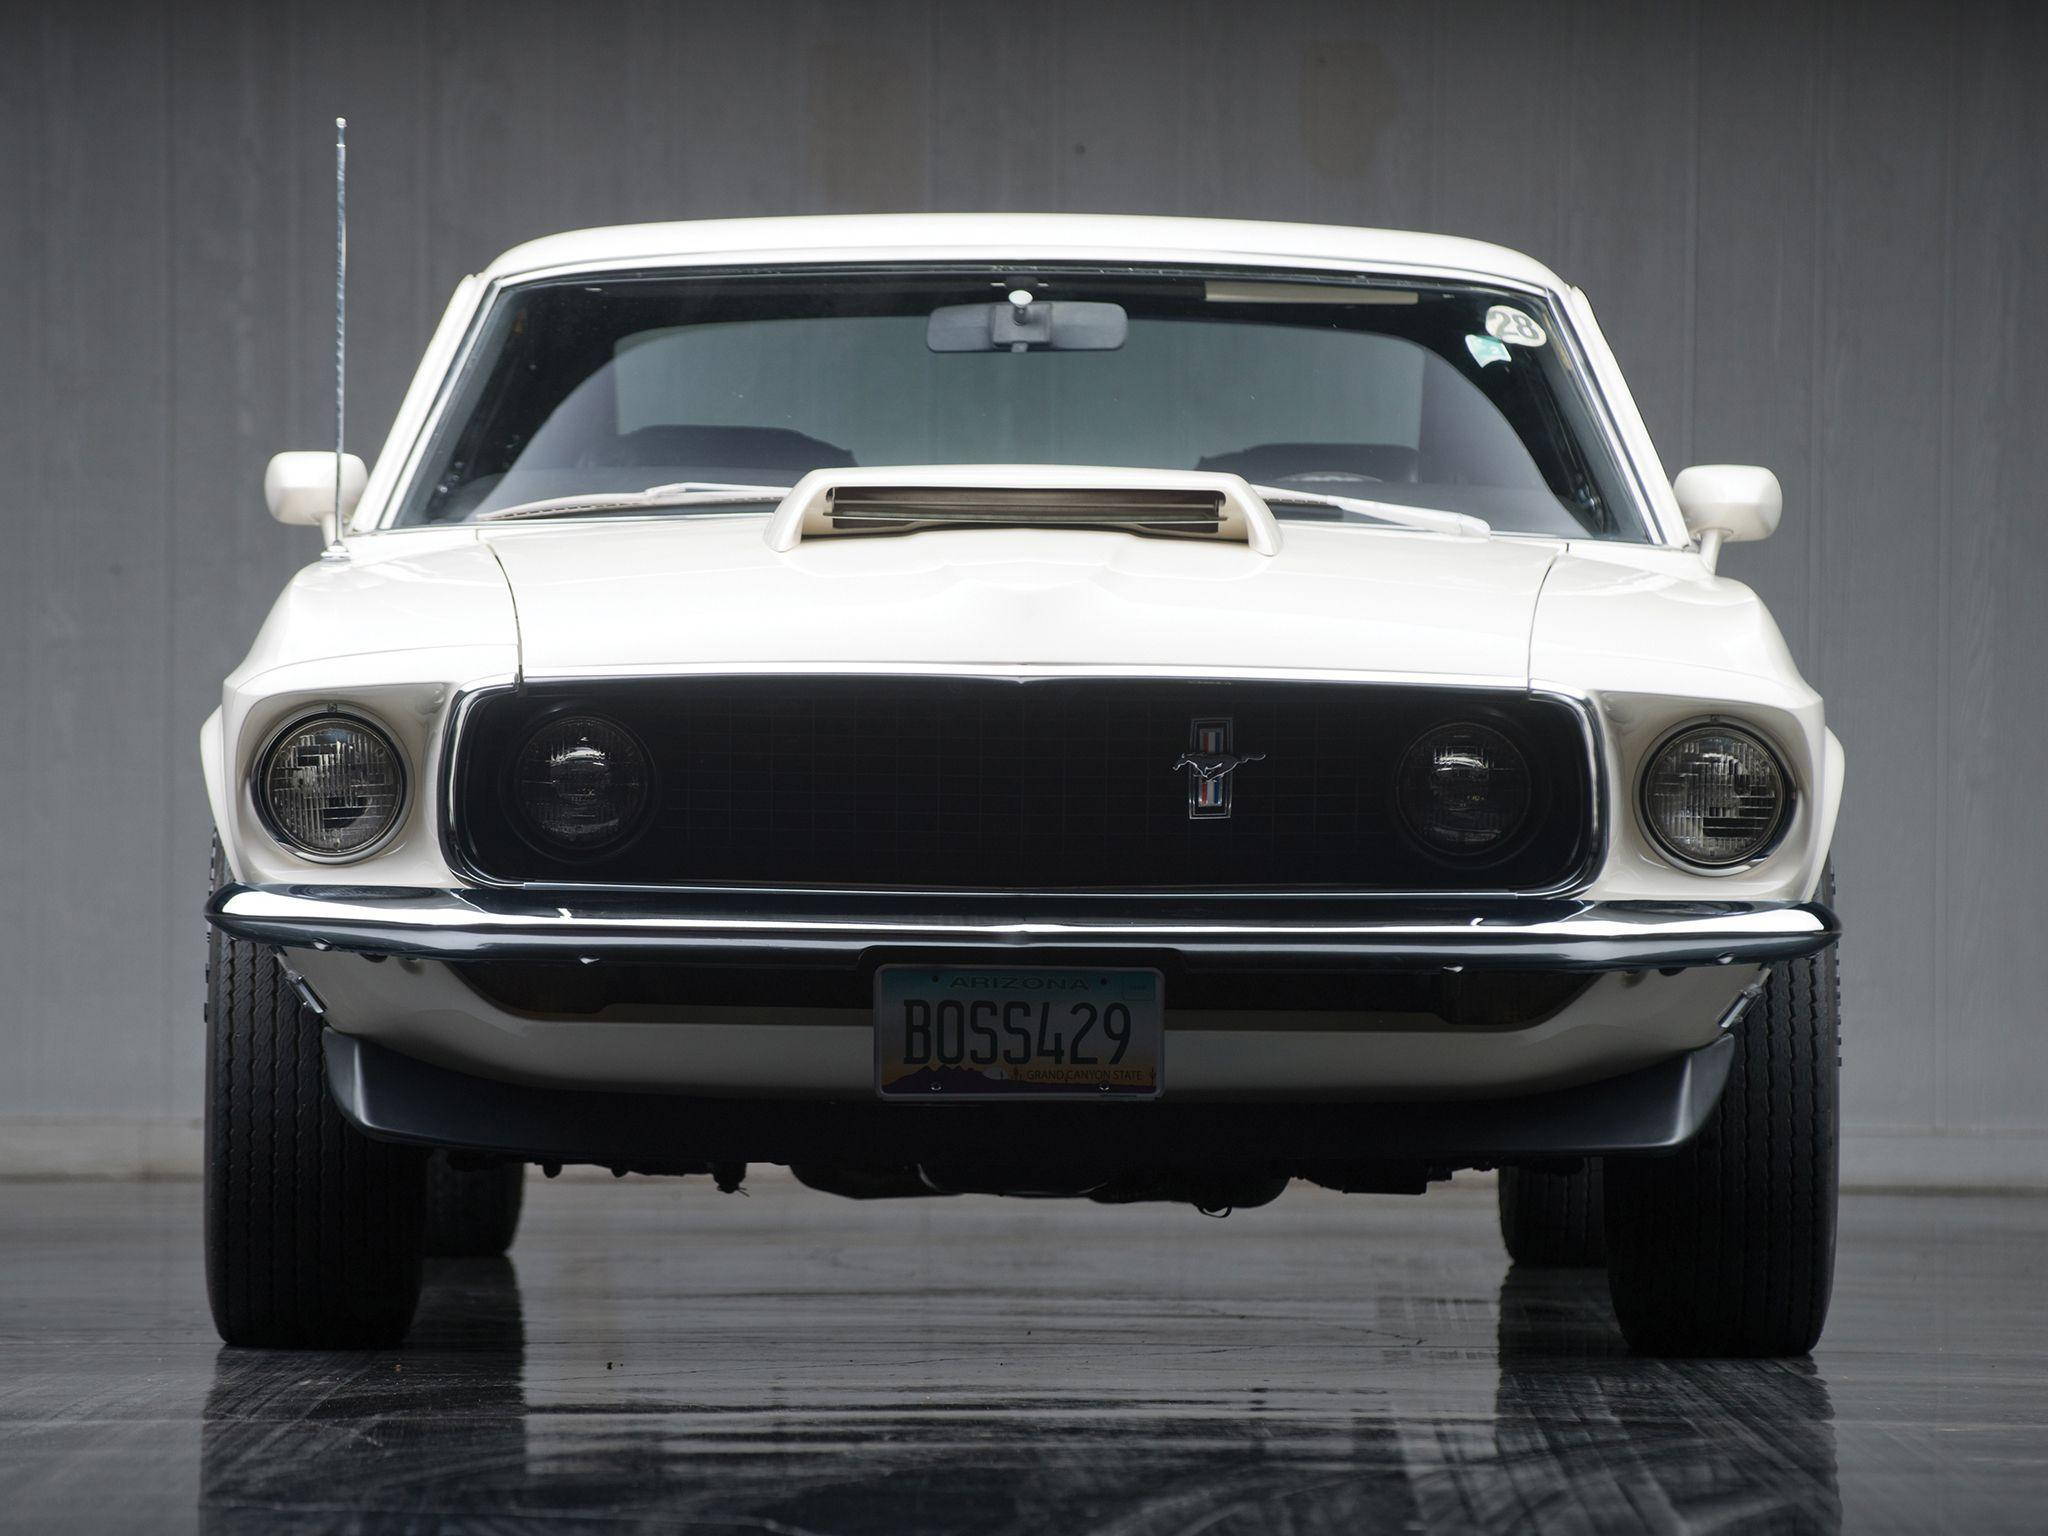 1969 Mustang Boss 429 ford muscle classic g wallpapers